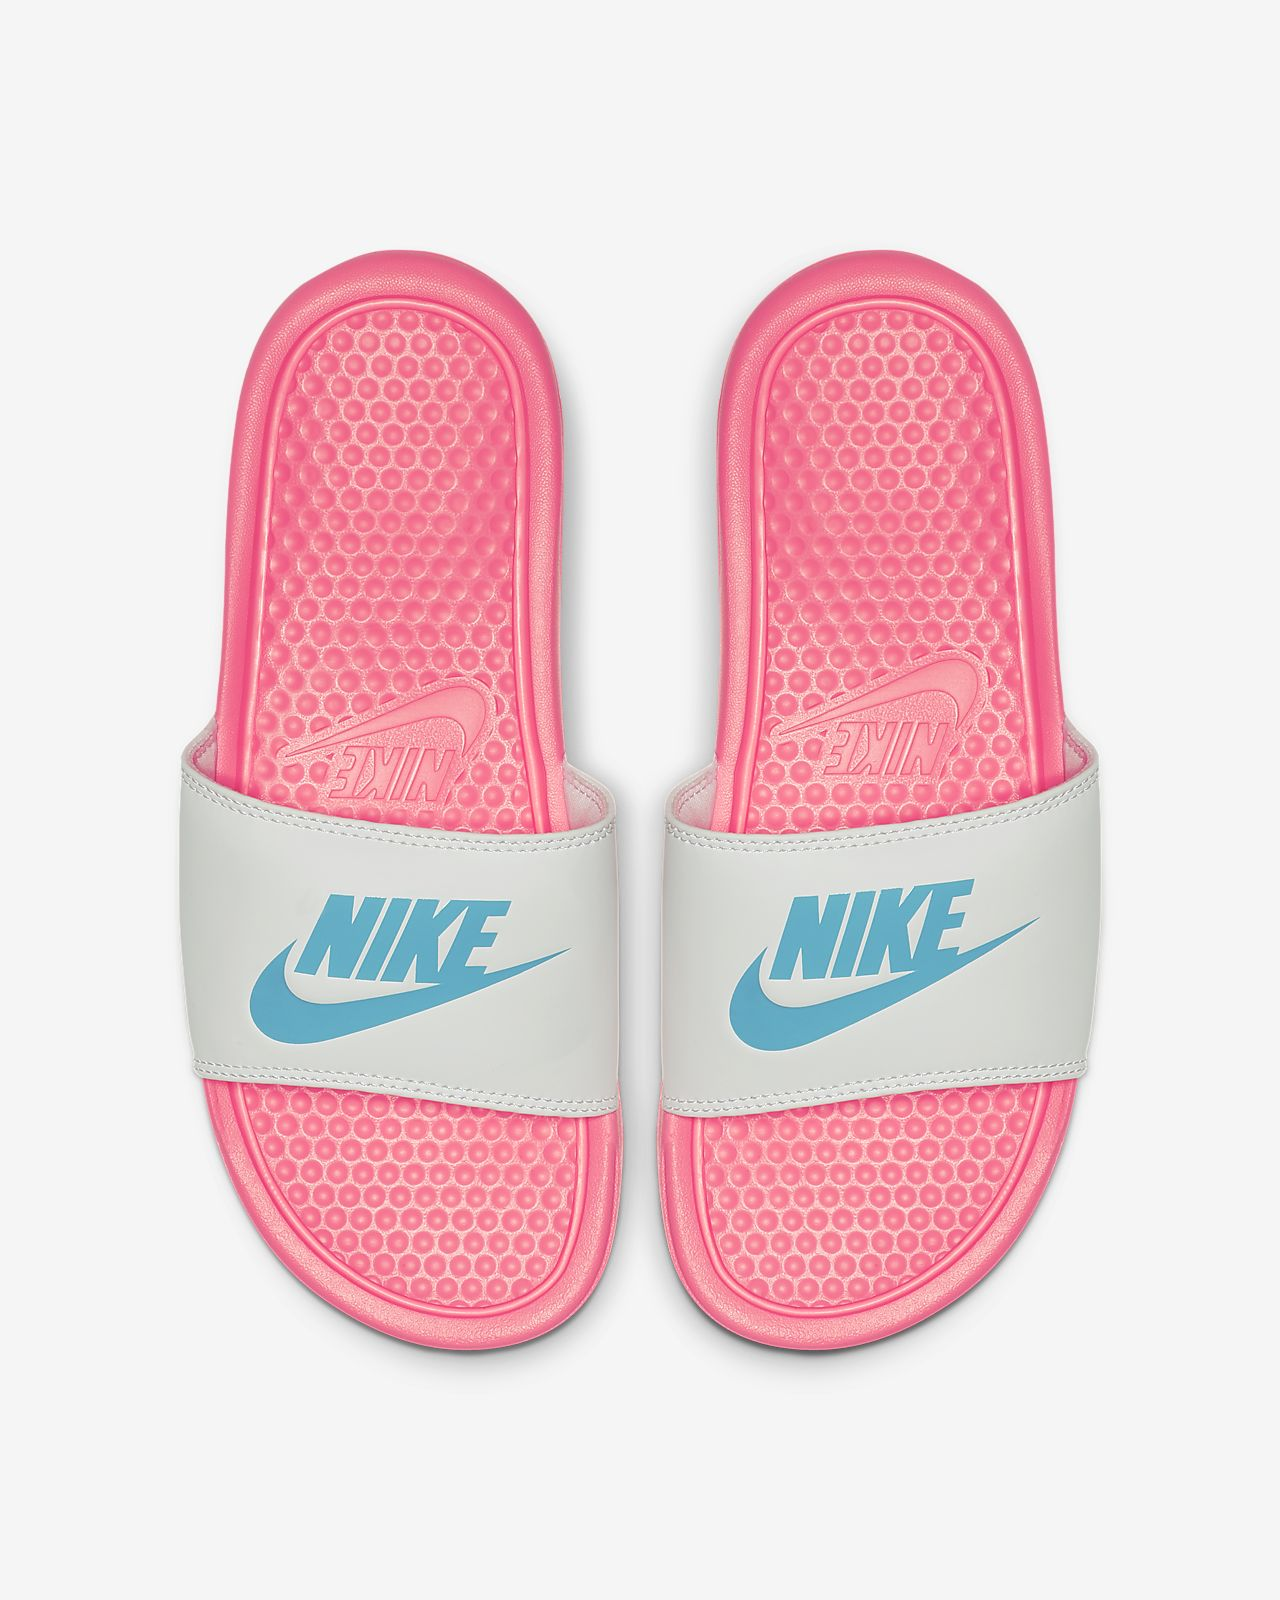 huge selection of exclusive deals so cheap Claquette Nike Benassi pour Femme